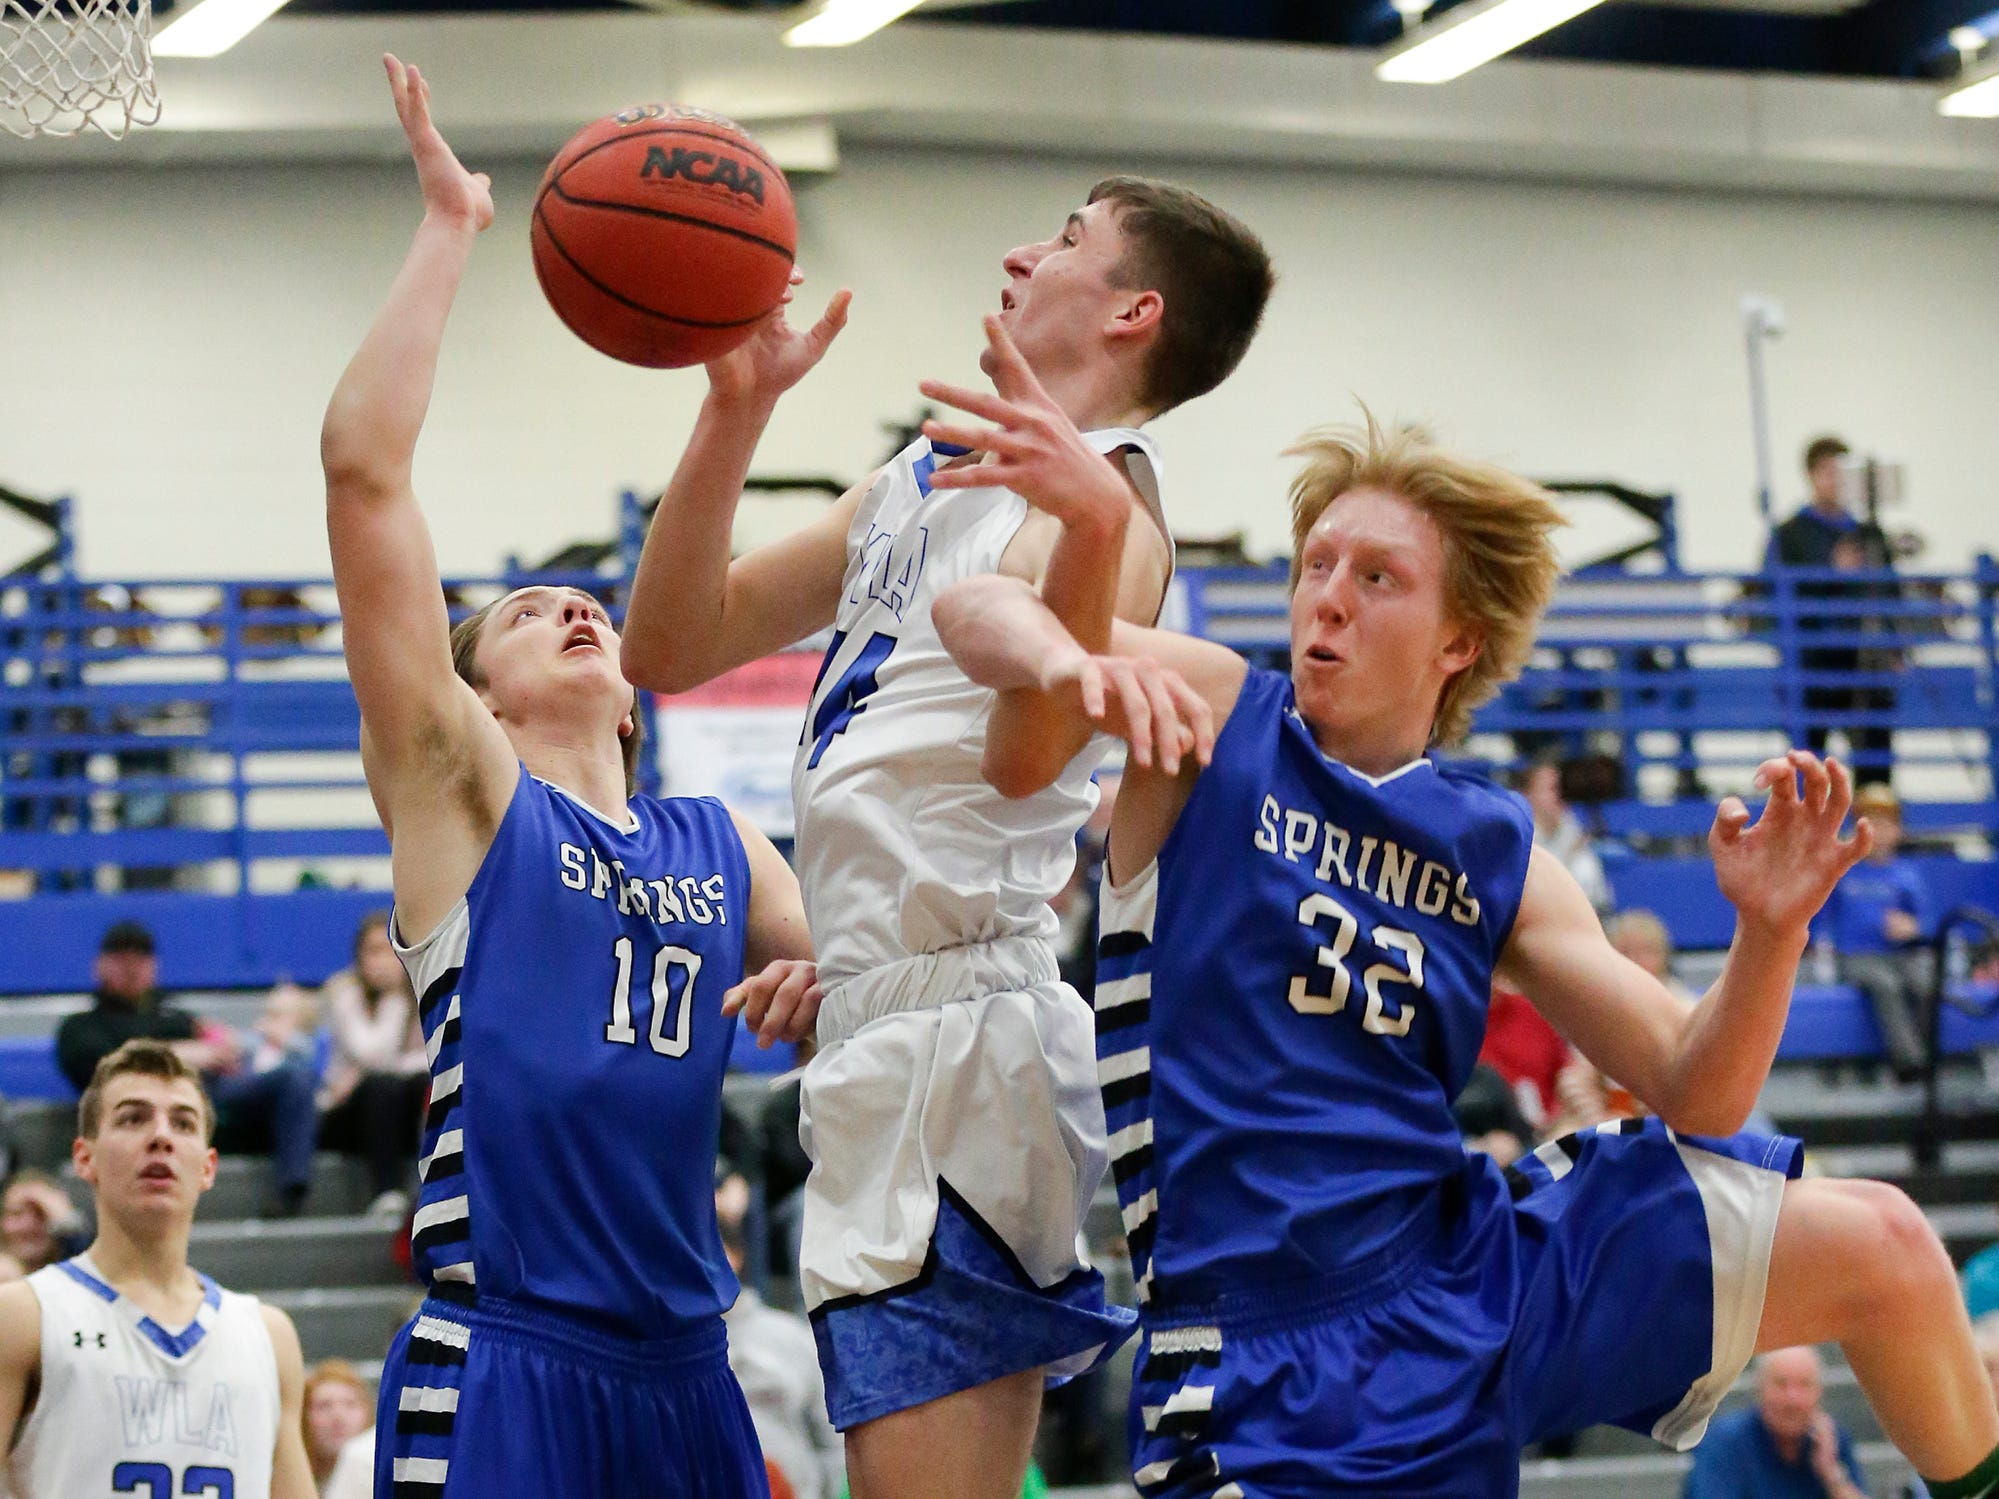 Winnebago Lutheran Academy boys basketball's Benji Cole (44) is fouled by St Mary's Springs Academy's Ezra Tucker (32) during their game Thursday, February 21, 2019 in Fond du Lac, Wisconsin. Winnebago Lutheran Academy won the game 95-86. Doug Raflik/USA TODAY NETWORK-Wisconsin